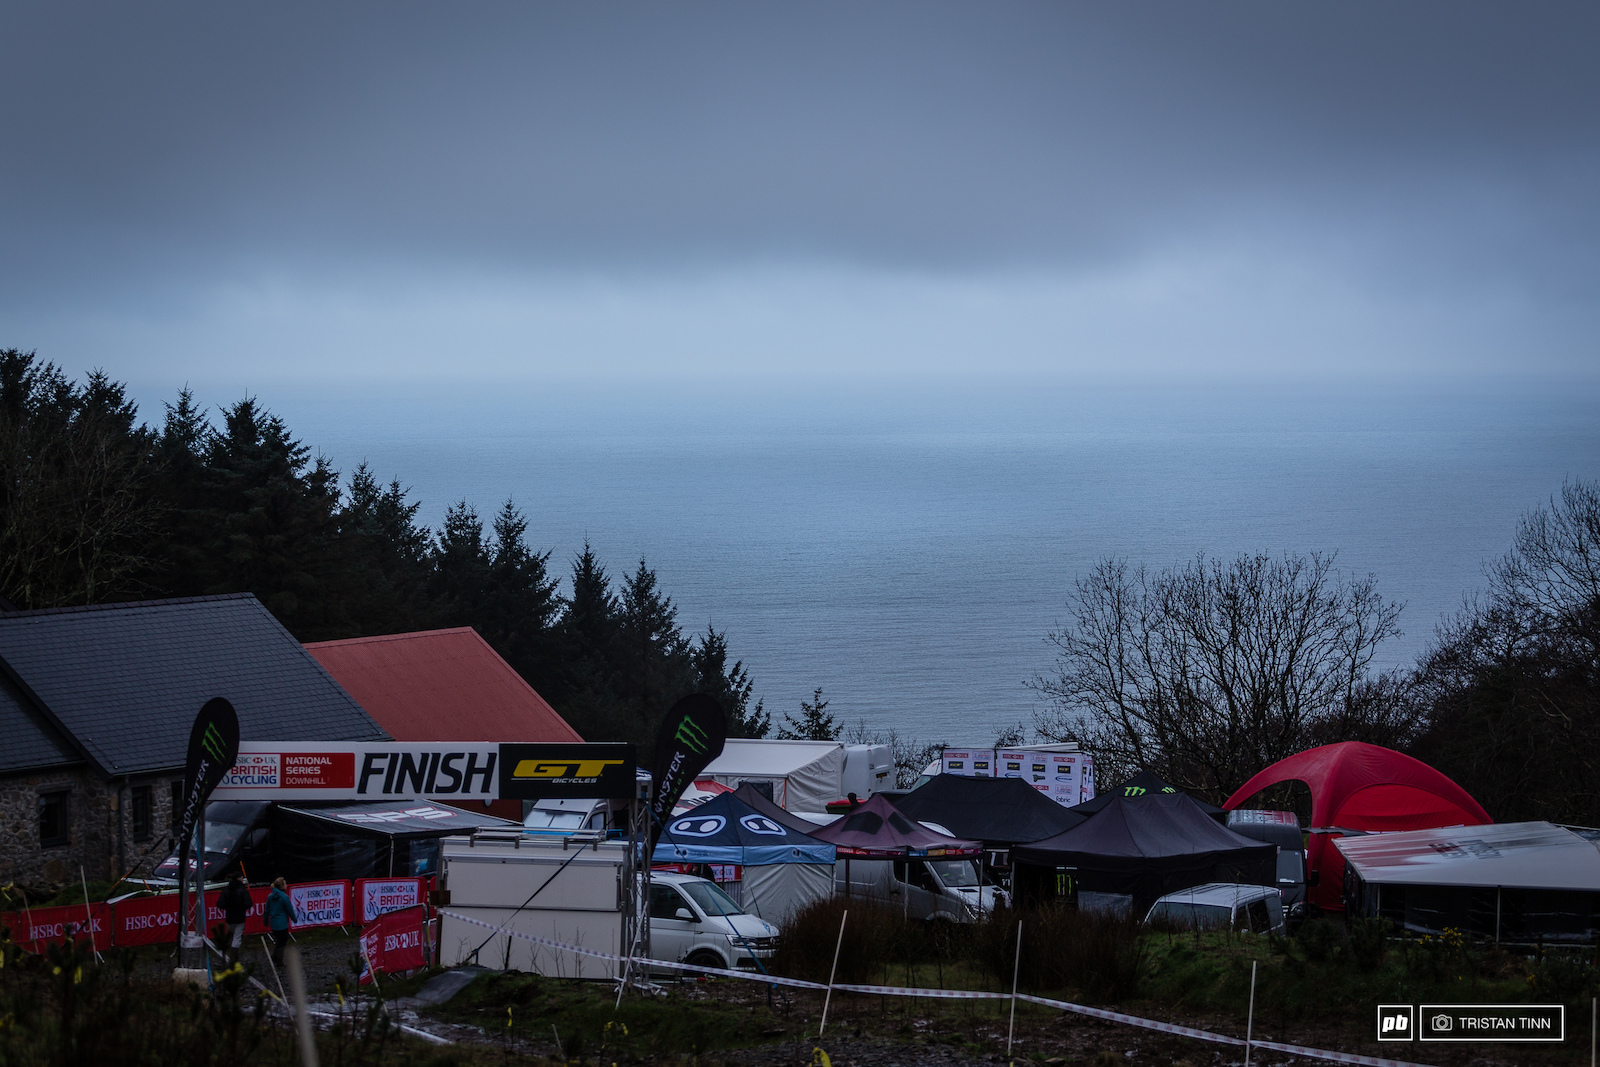 The stunning views out over the sea from the finish at Nant Gwrtheyrn.